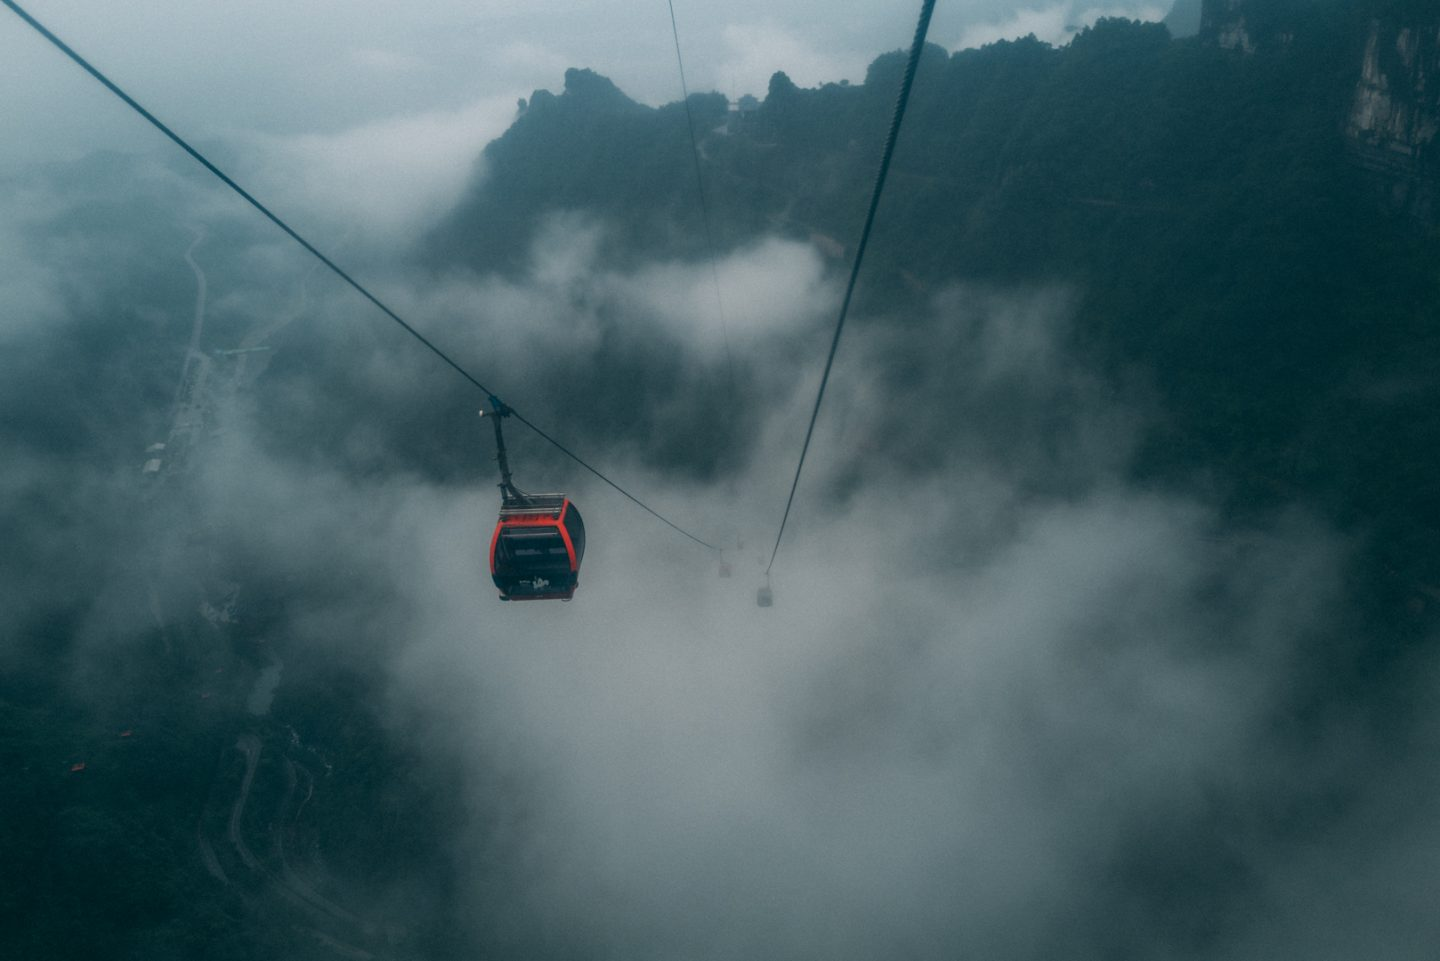 photo from the mountains in the cable car observing another cable car approaching